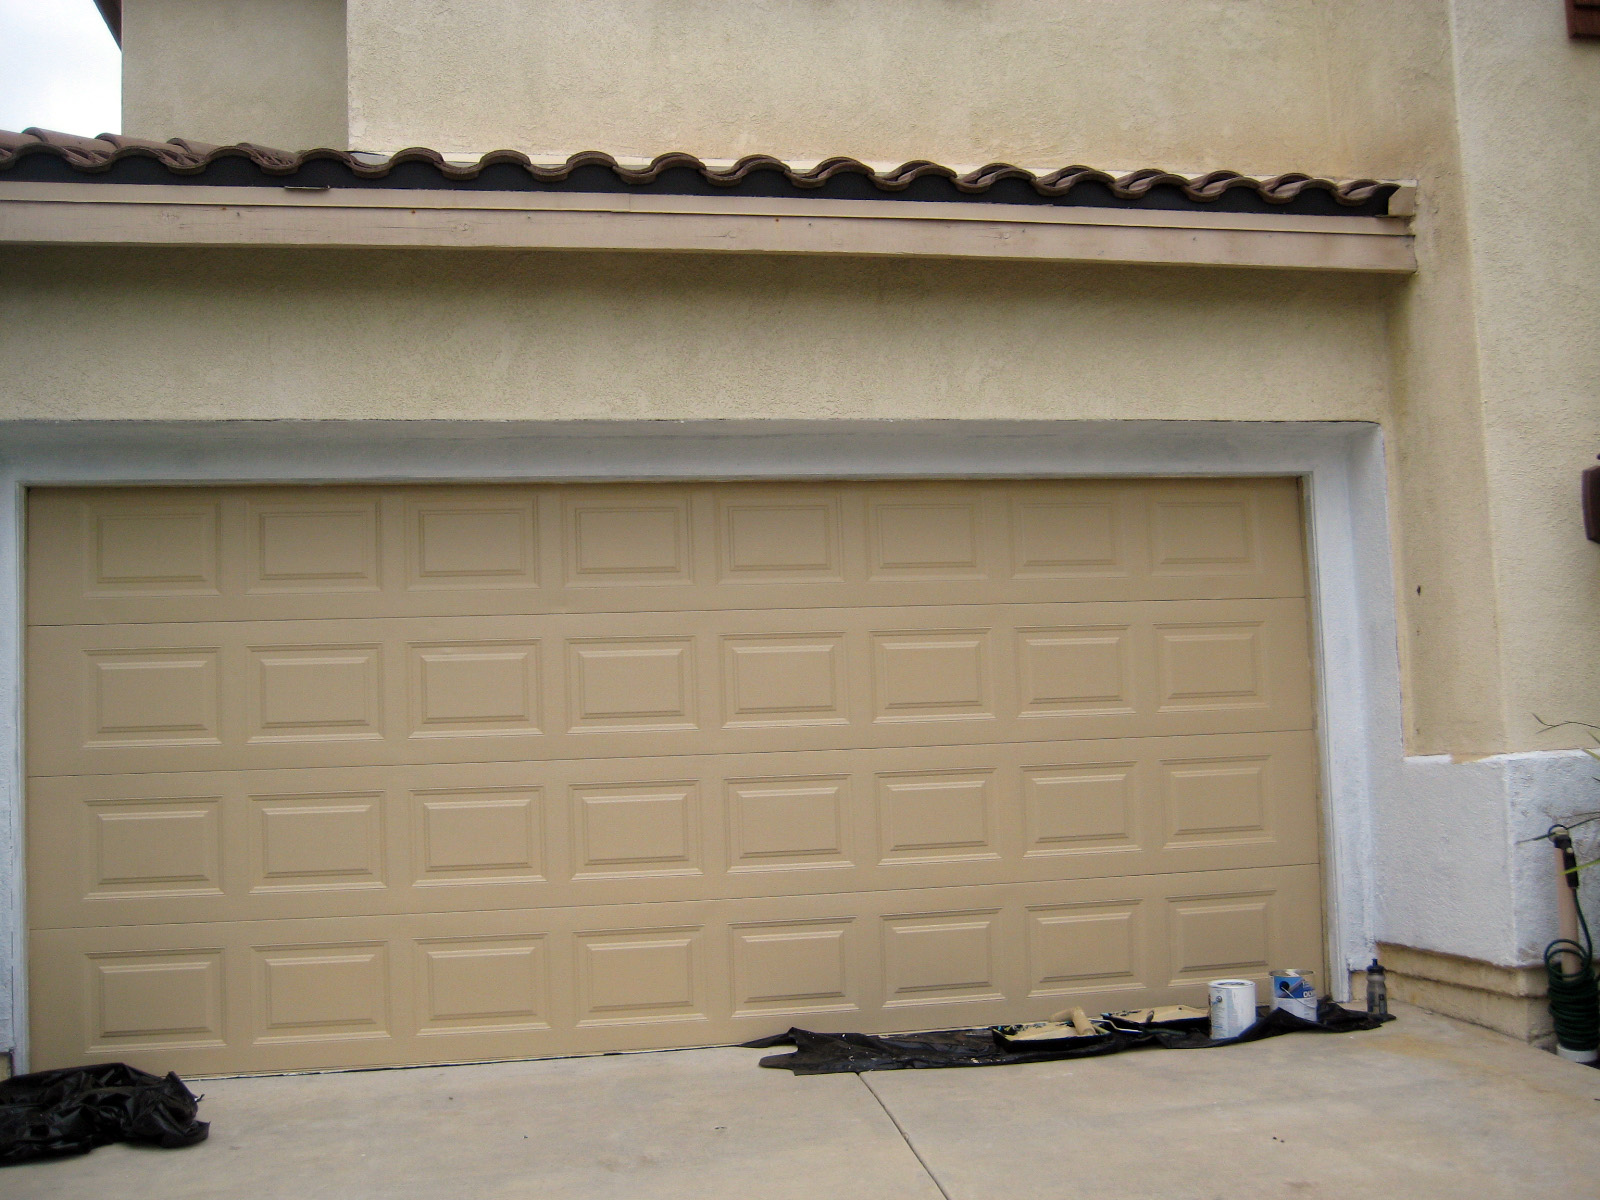 cost look garage pin pinterest door doors roswell wood reno